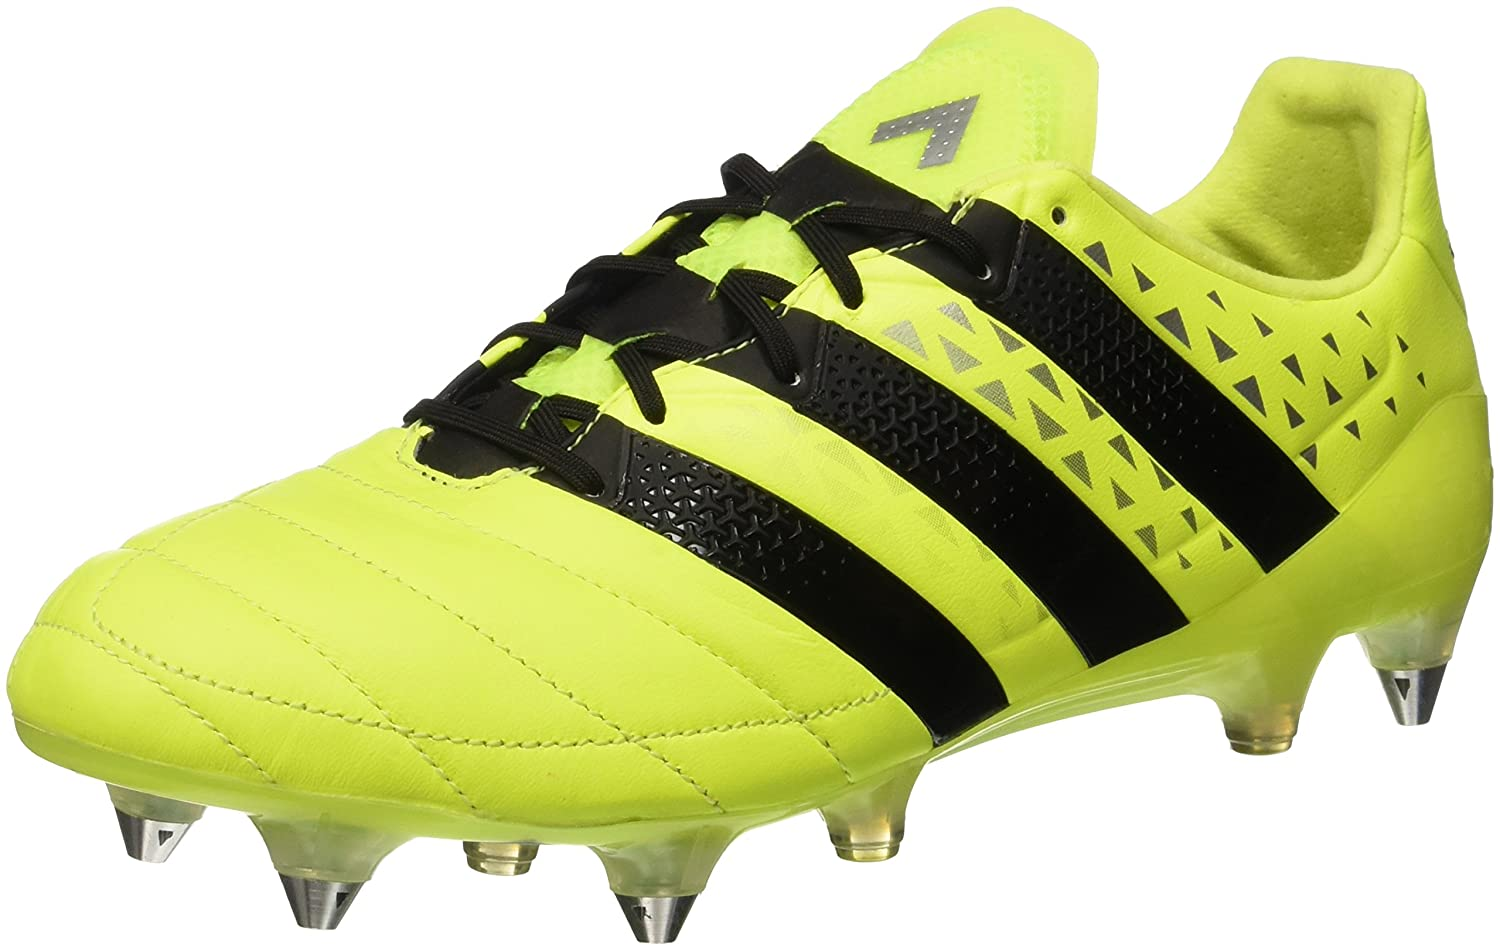 Adidas ACE SG Leather hombre  Football Boots soccer cleats